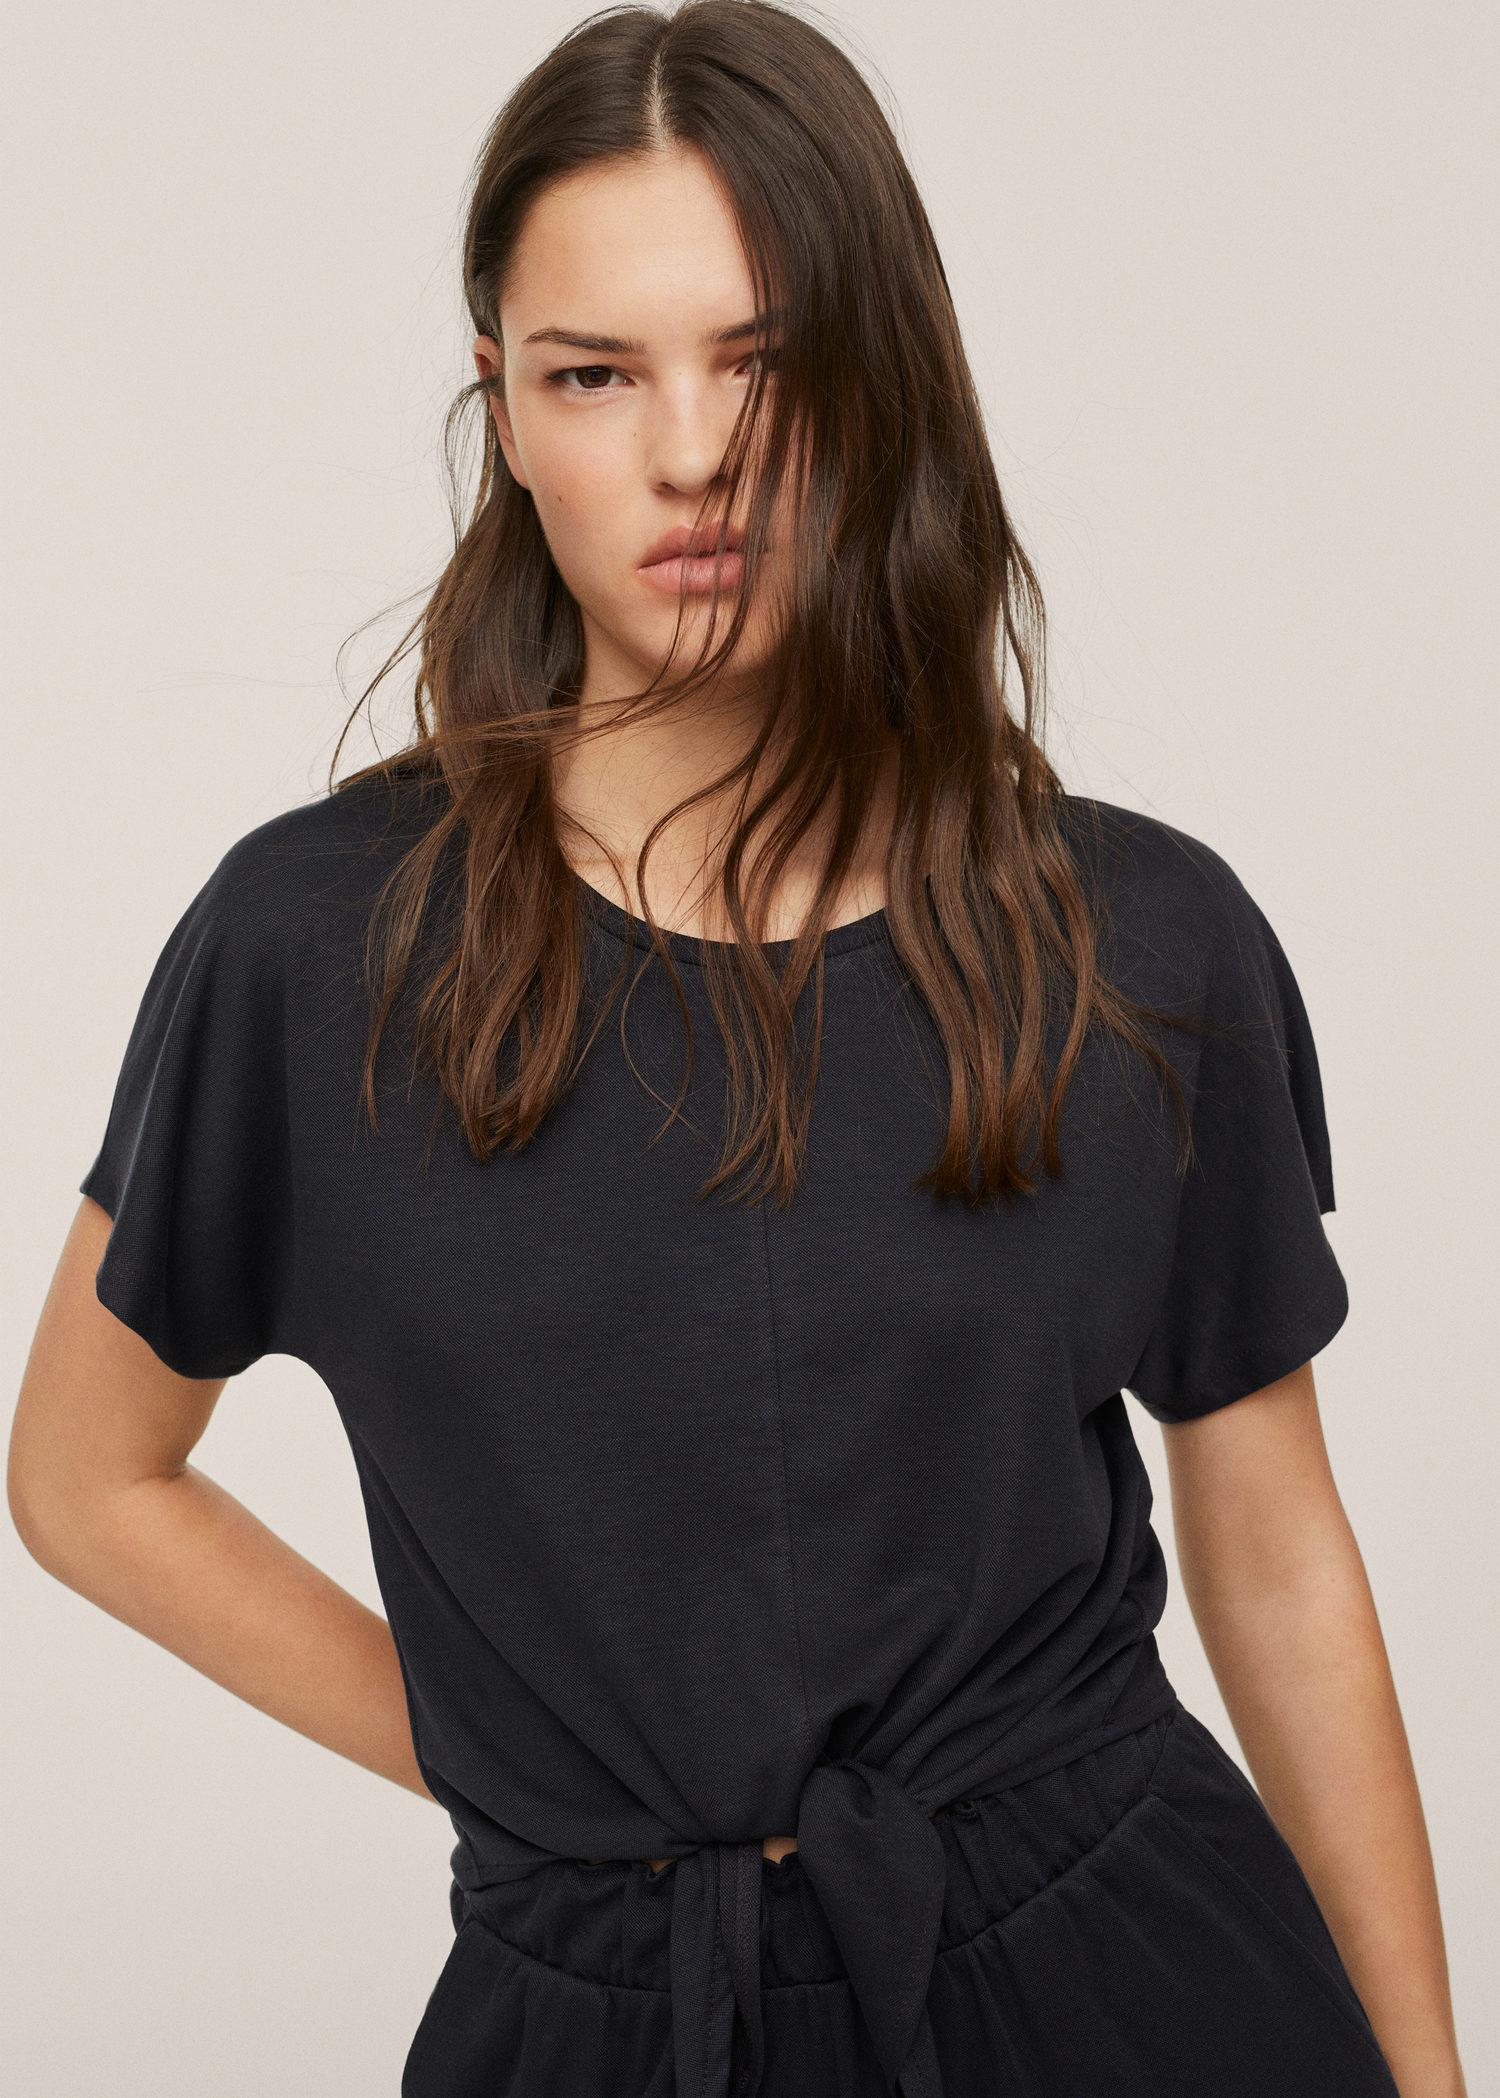 Knotted lyocell t-shirt